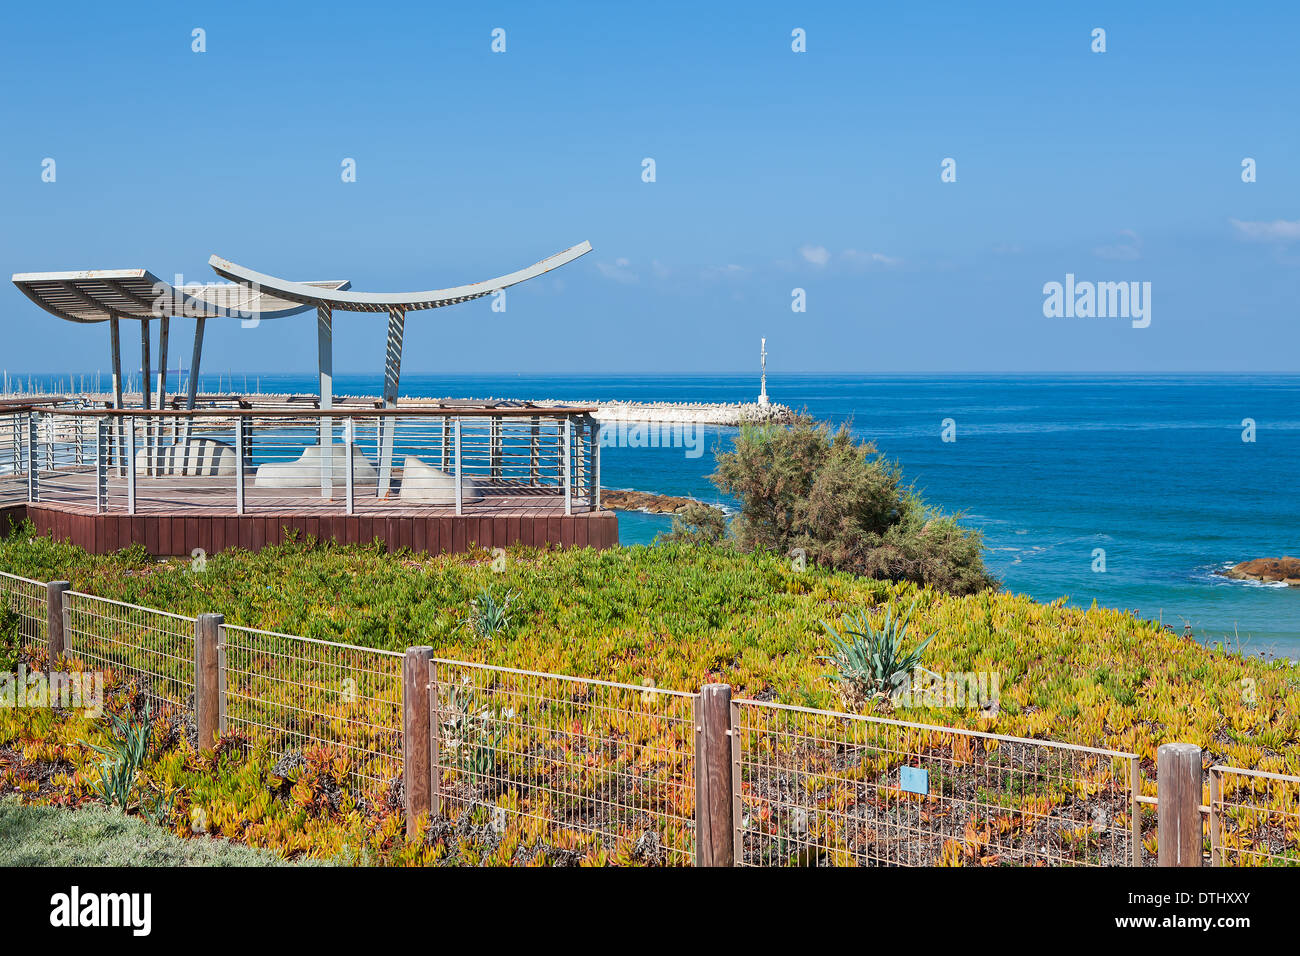 Promenade and viewpoint overlooking calm Mediterranean sea in Ashqelon, Israel. - Stock Image